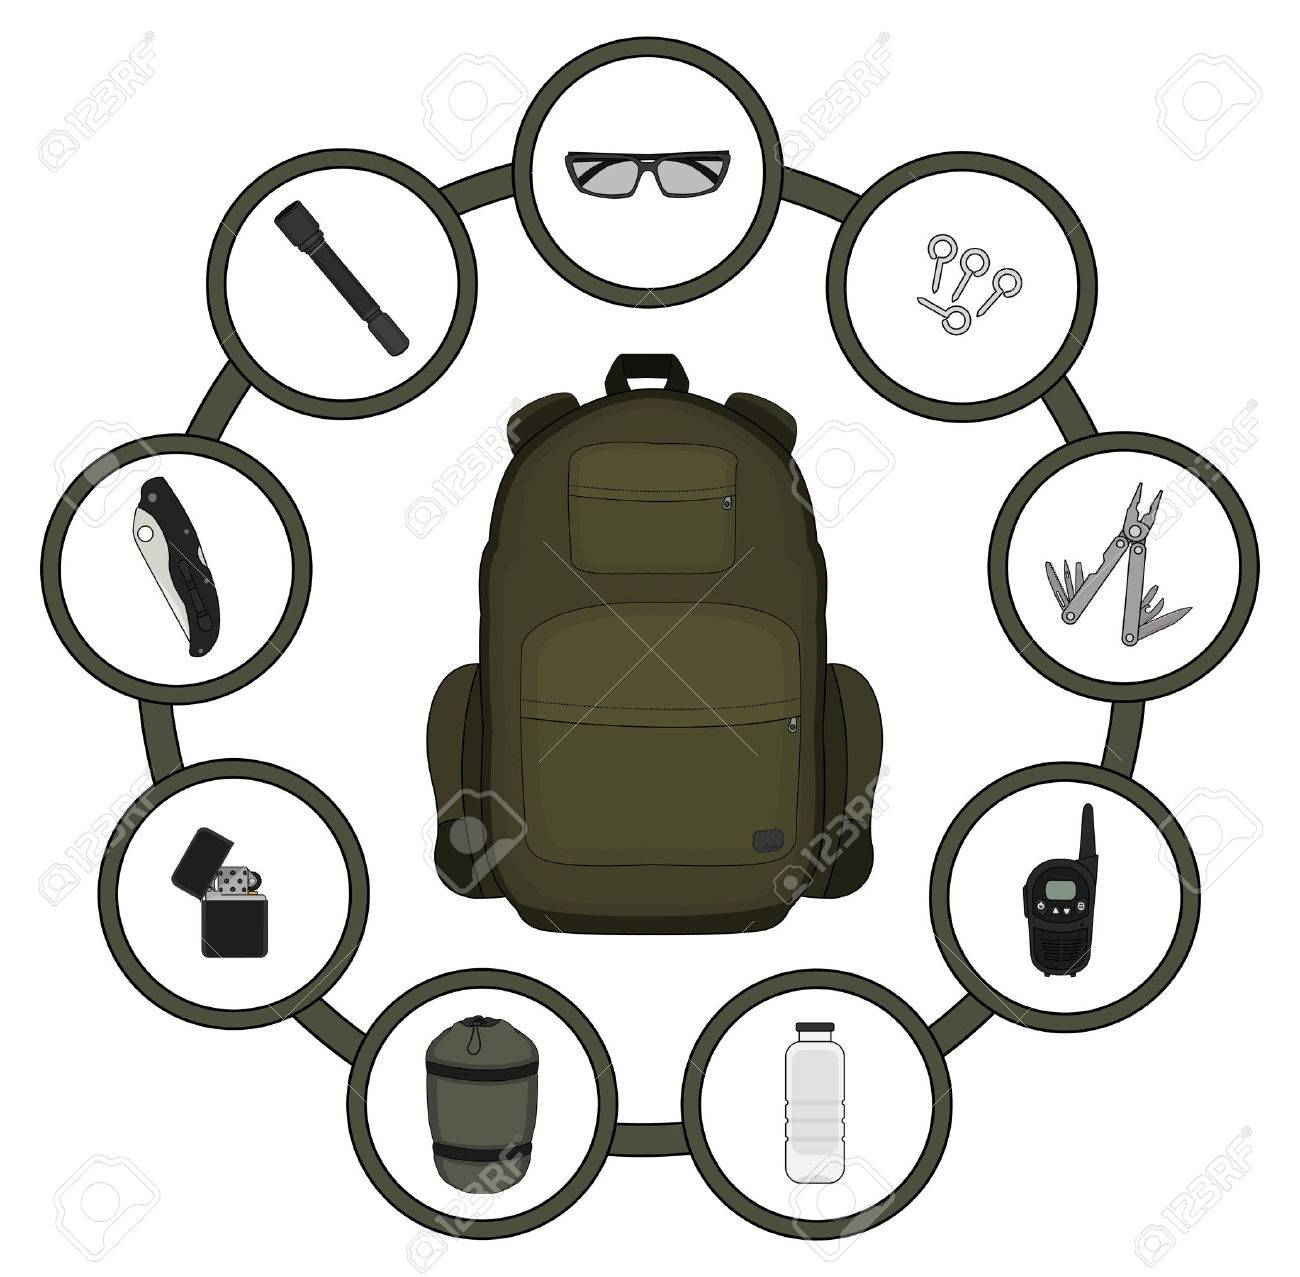 Traveler backpack contents. Tourism objects in round frame. Vector clip art illustrations isolated on white - 41295612